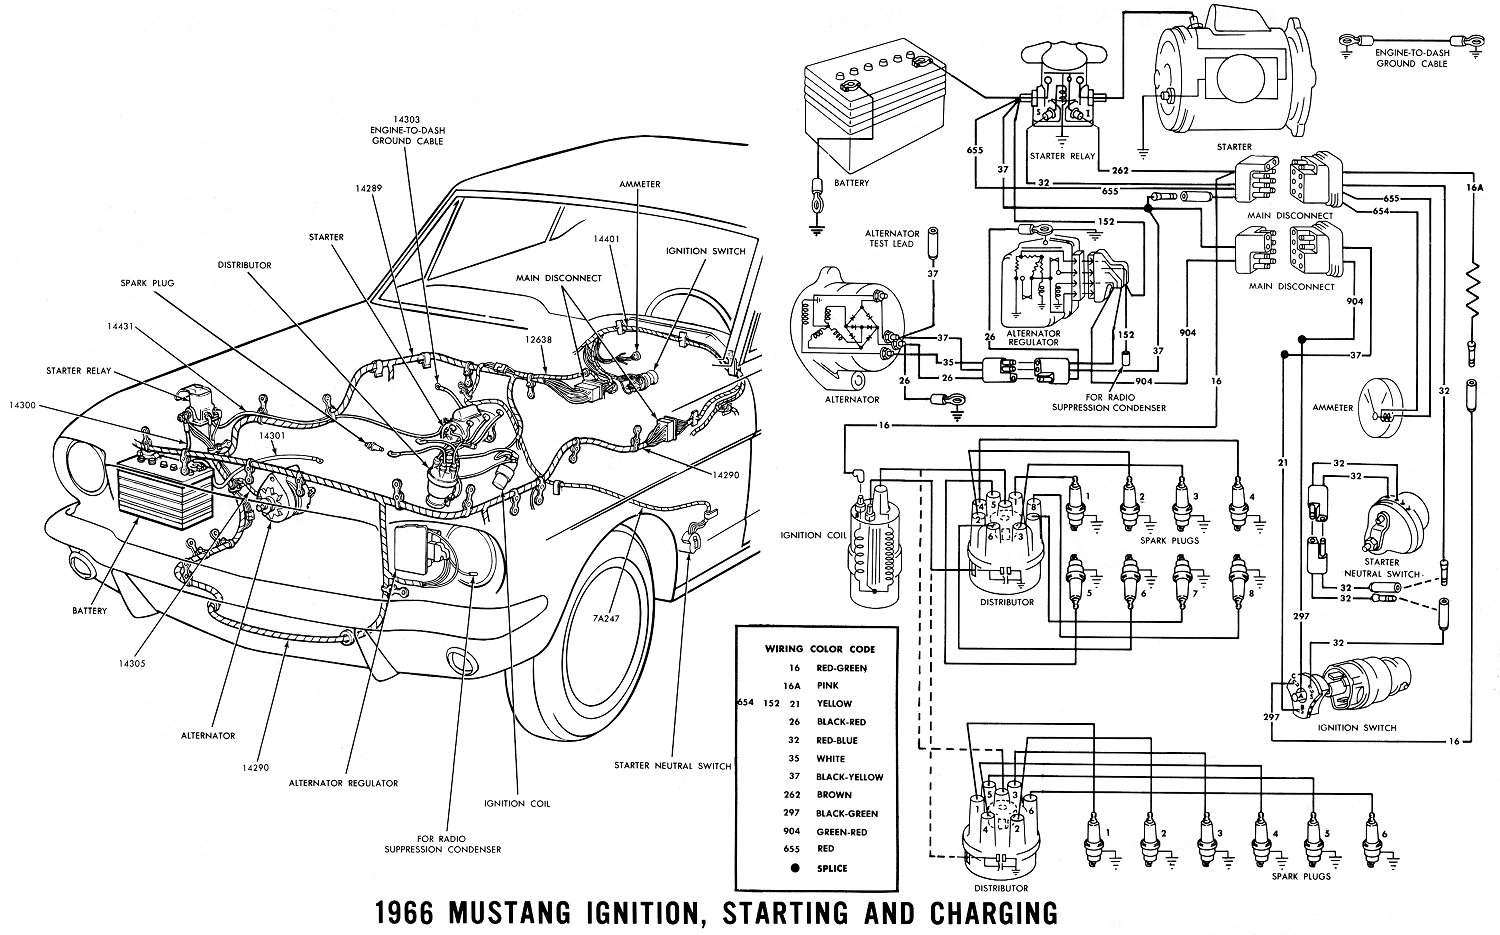 1966 mustang fuel gauge wiring 1966 mustang wiring diagrams - average joe restoration 1966 mustang fuel line diagram